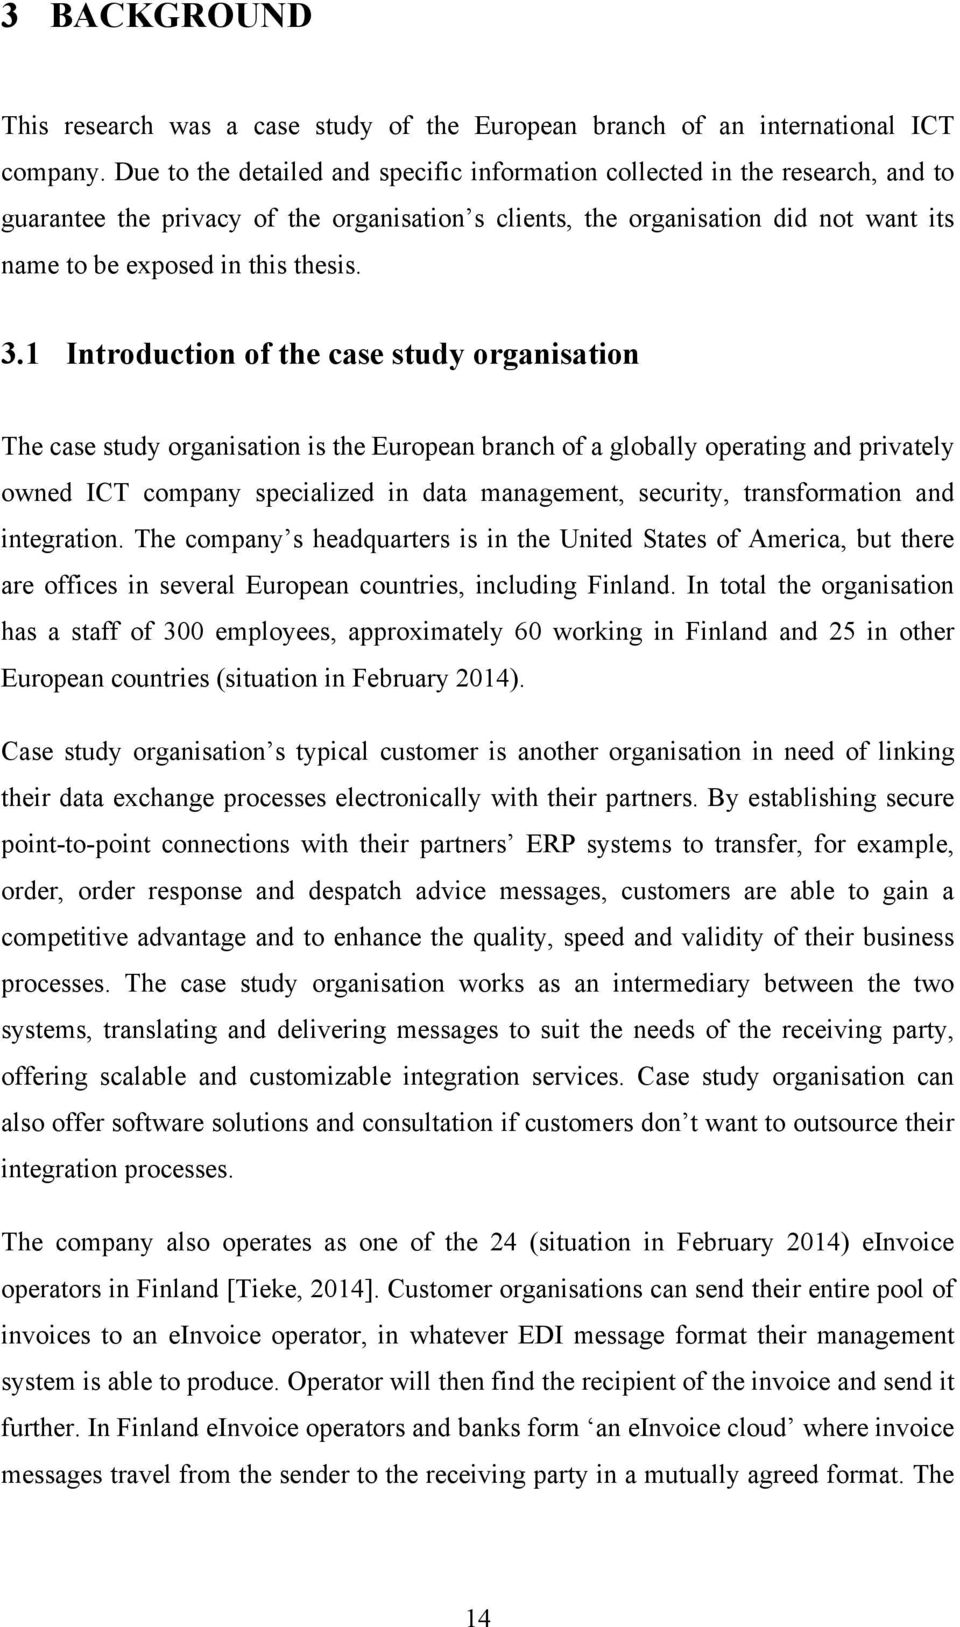 3.1 Introduction of the case study organisation The case study organisation is the European branch of a globally operating and privately owned ICT company specialized in data management, security,